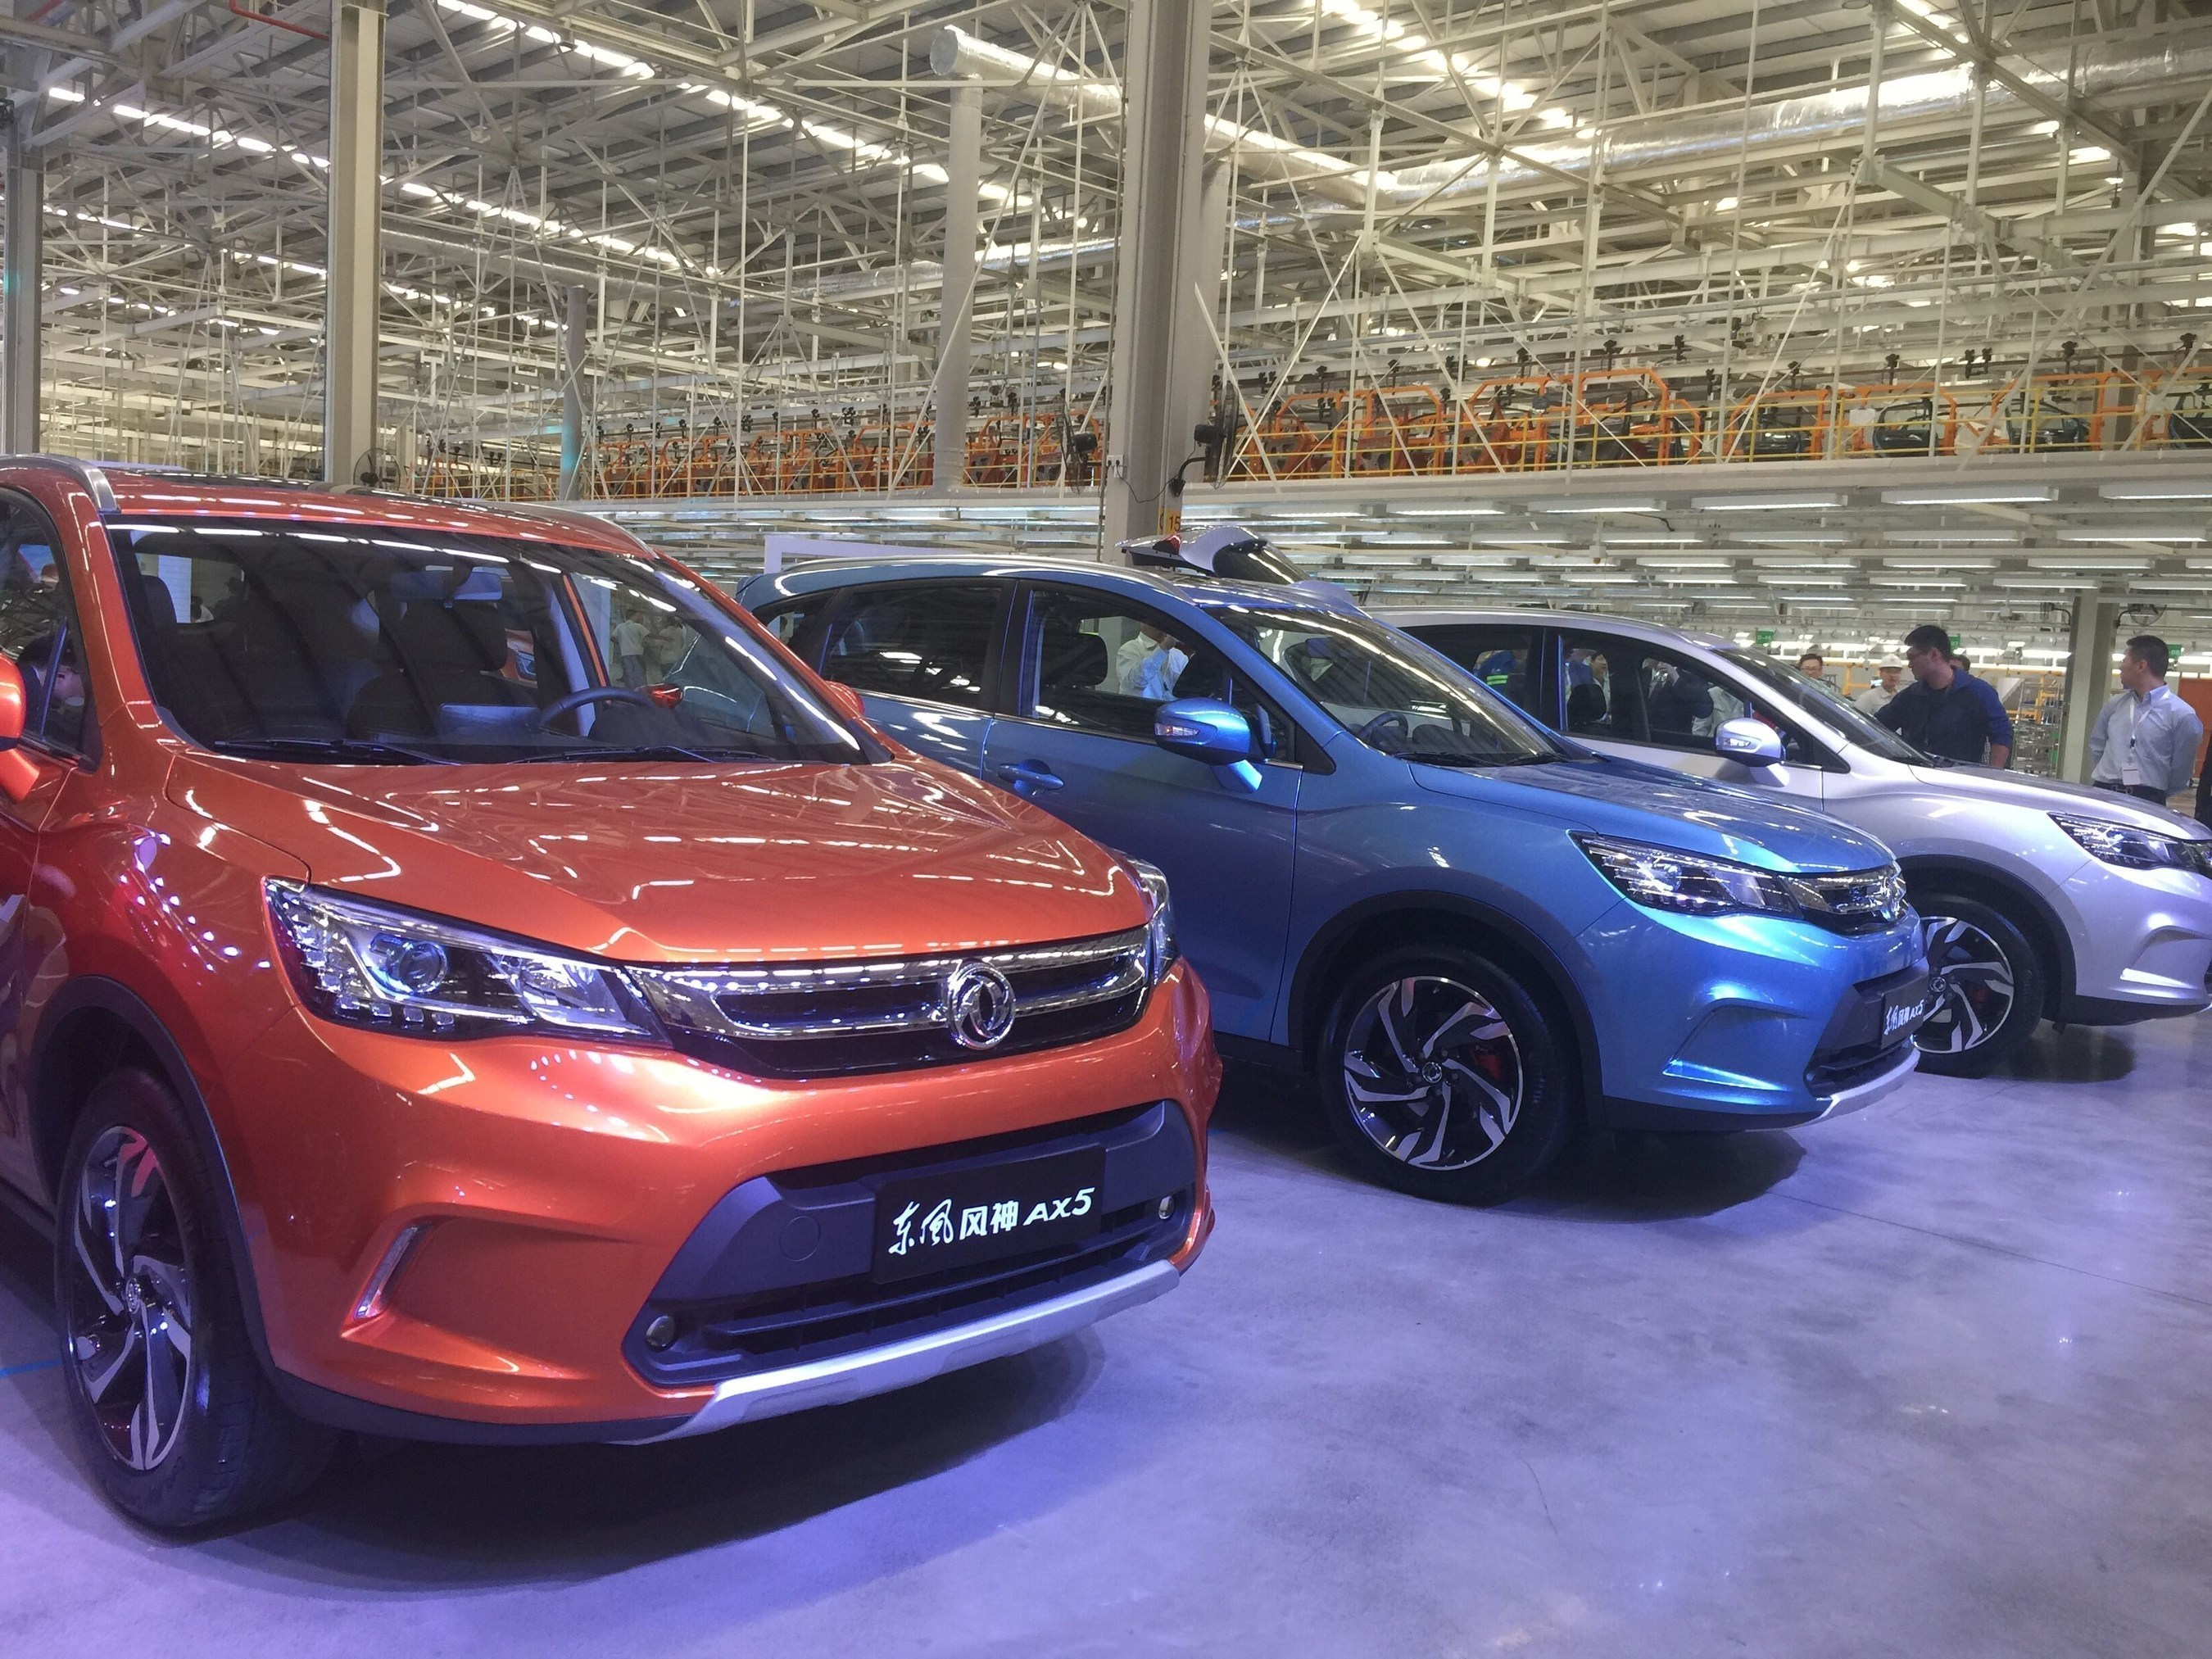 New Dongfeng SUV Model Starts to Roll Off the Production Line in Changzhou National Hi-Tech District